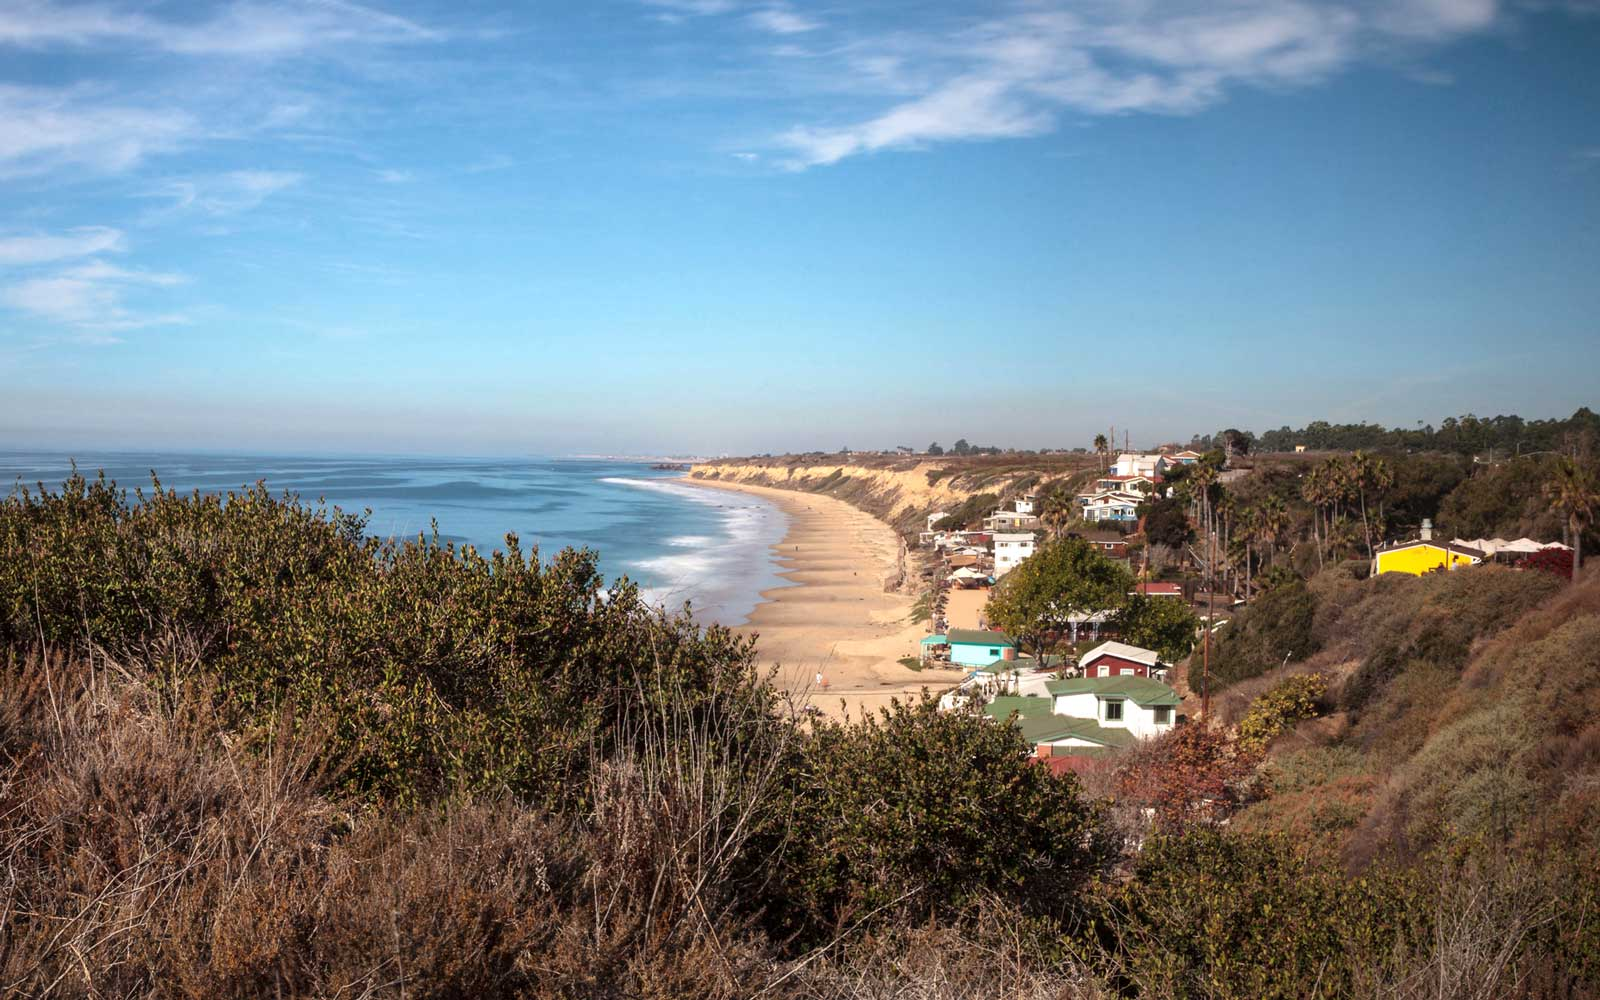 Beach cottages line Crystal Cove State Park beach